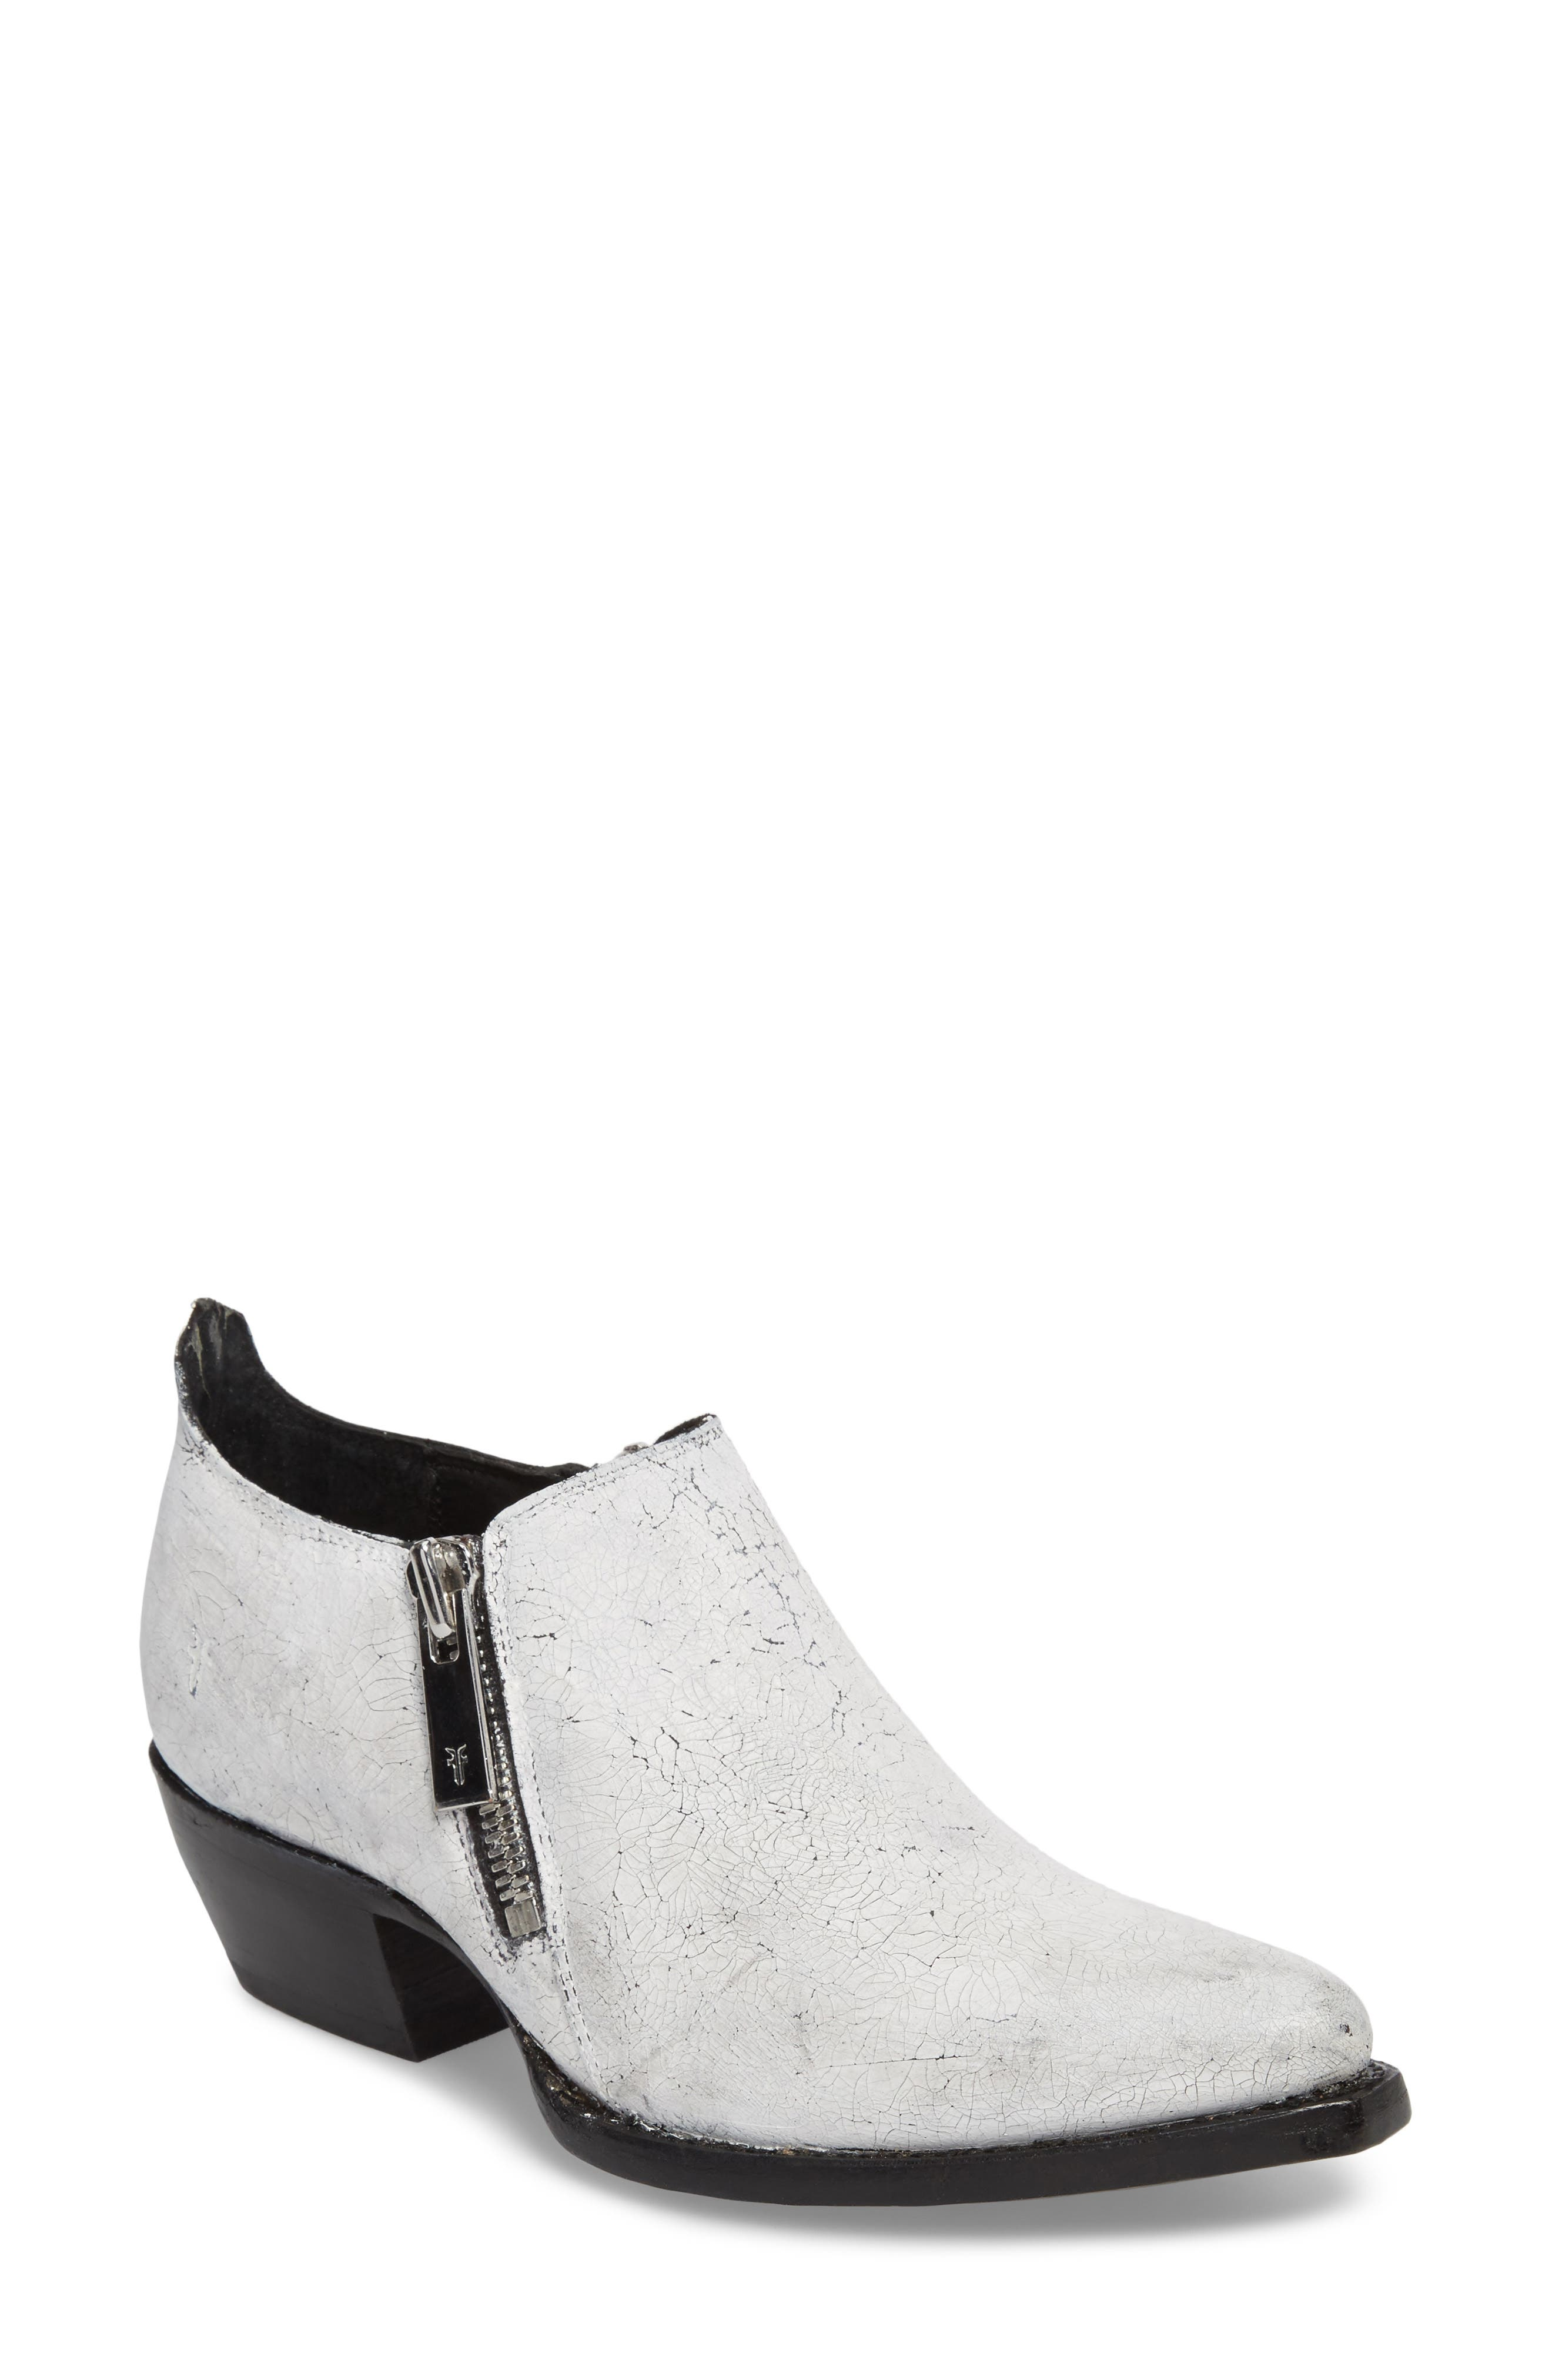 Sacha Double Zip Bootie,                         Main,                         color, White